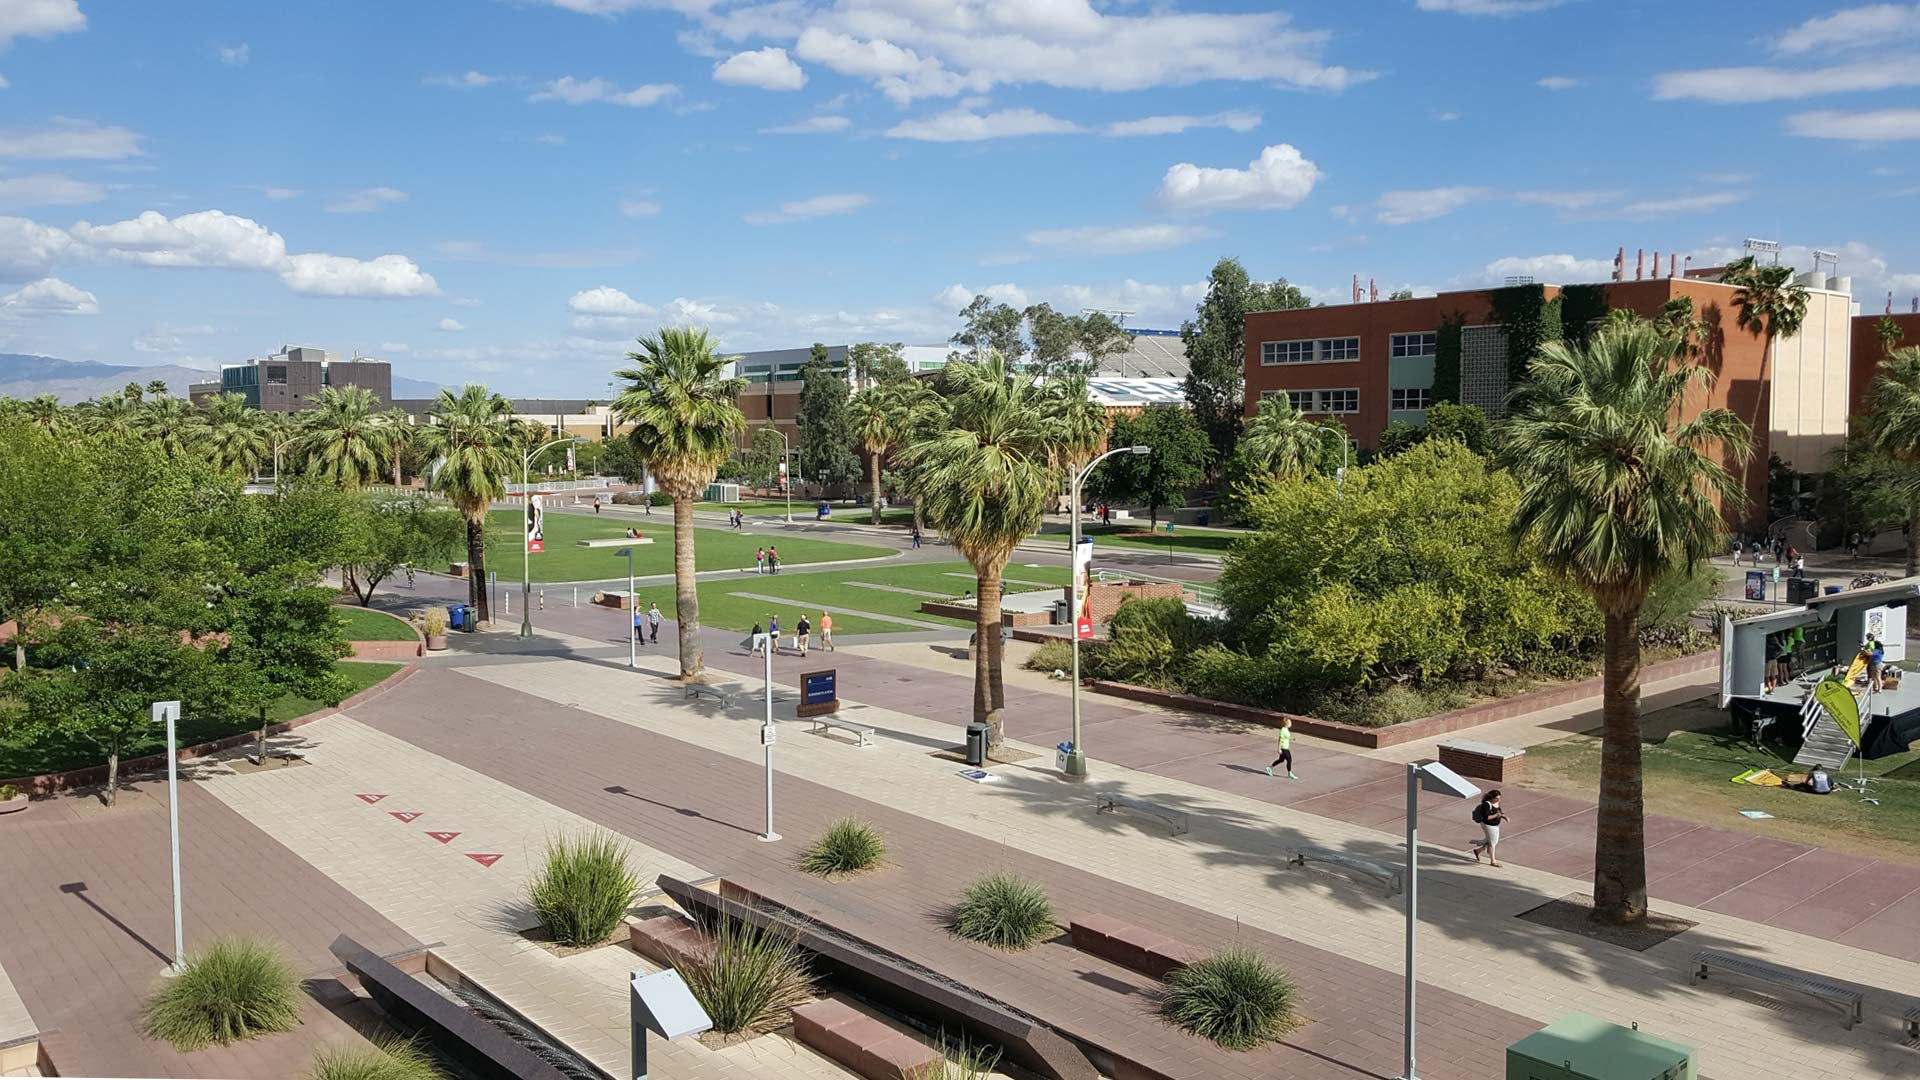 In August 2020, workers at the University of Arizona unionized. A growing number of workers in white-collar industries have formed unions in recent years.